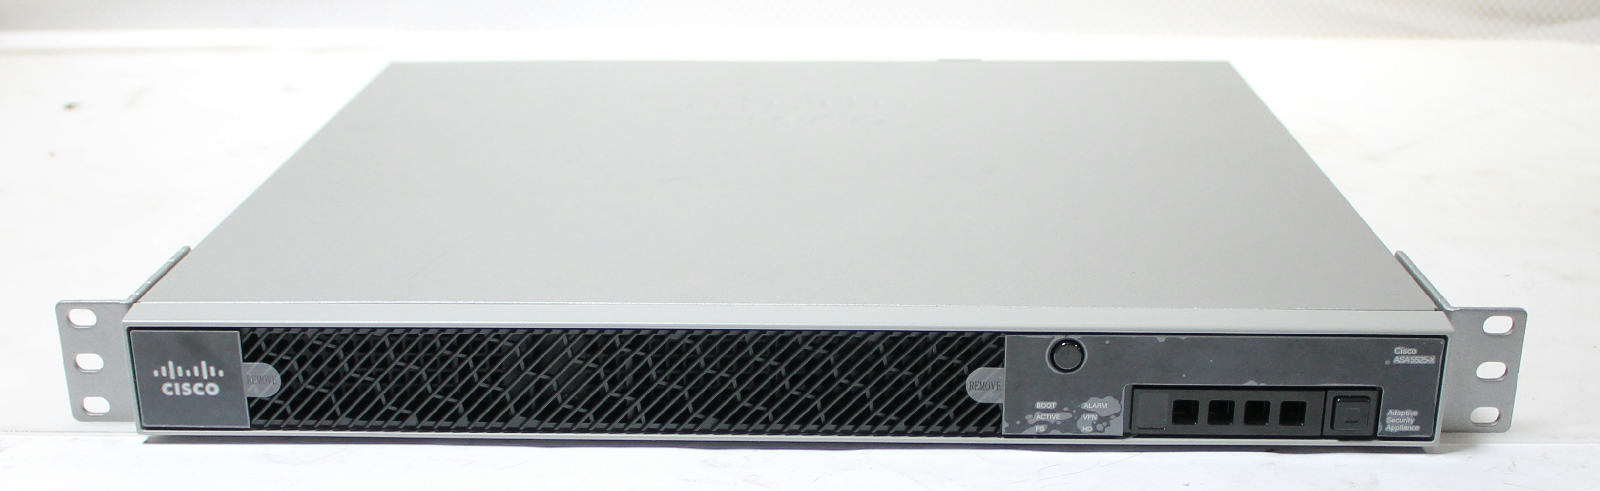 Cisco ASA5525-FPWR-K9 ASA 5525-X Security Firewall with FirePOWER Services